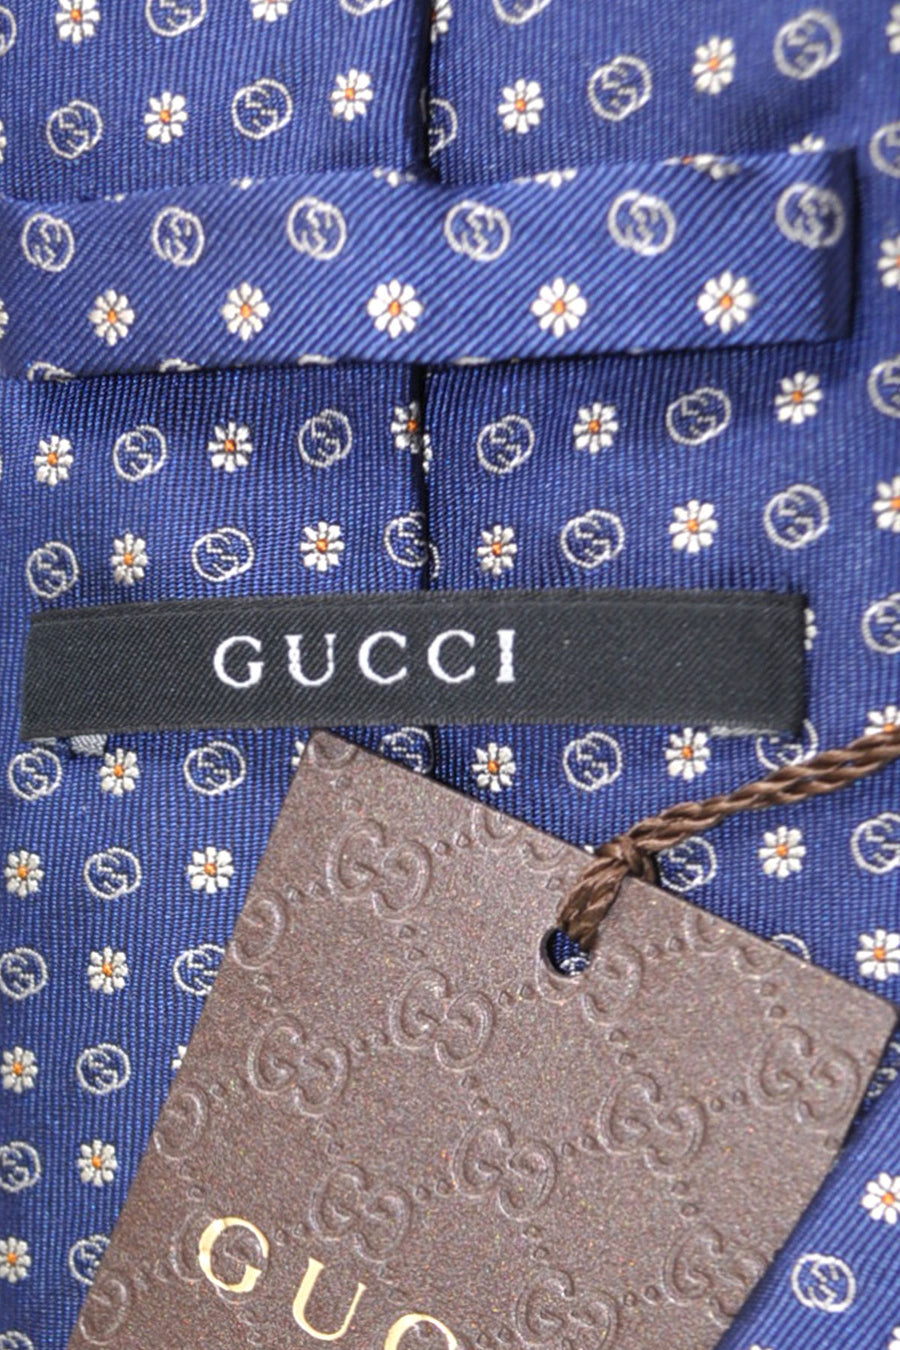 Gucci Tie Navy Floral - New Collection